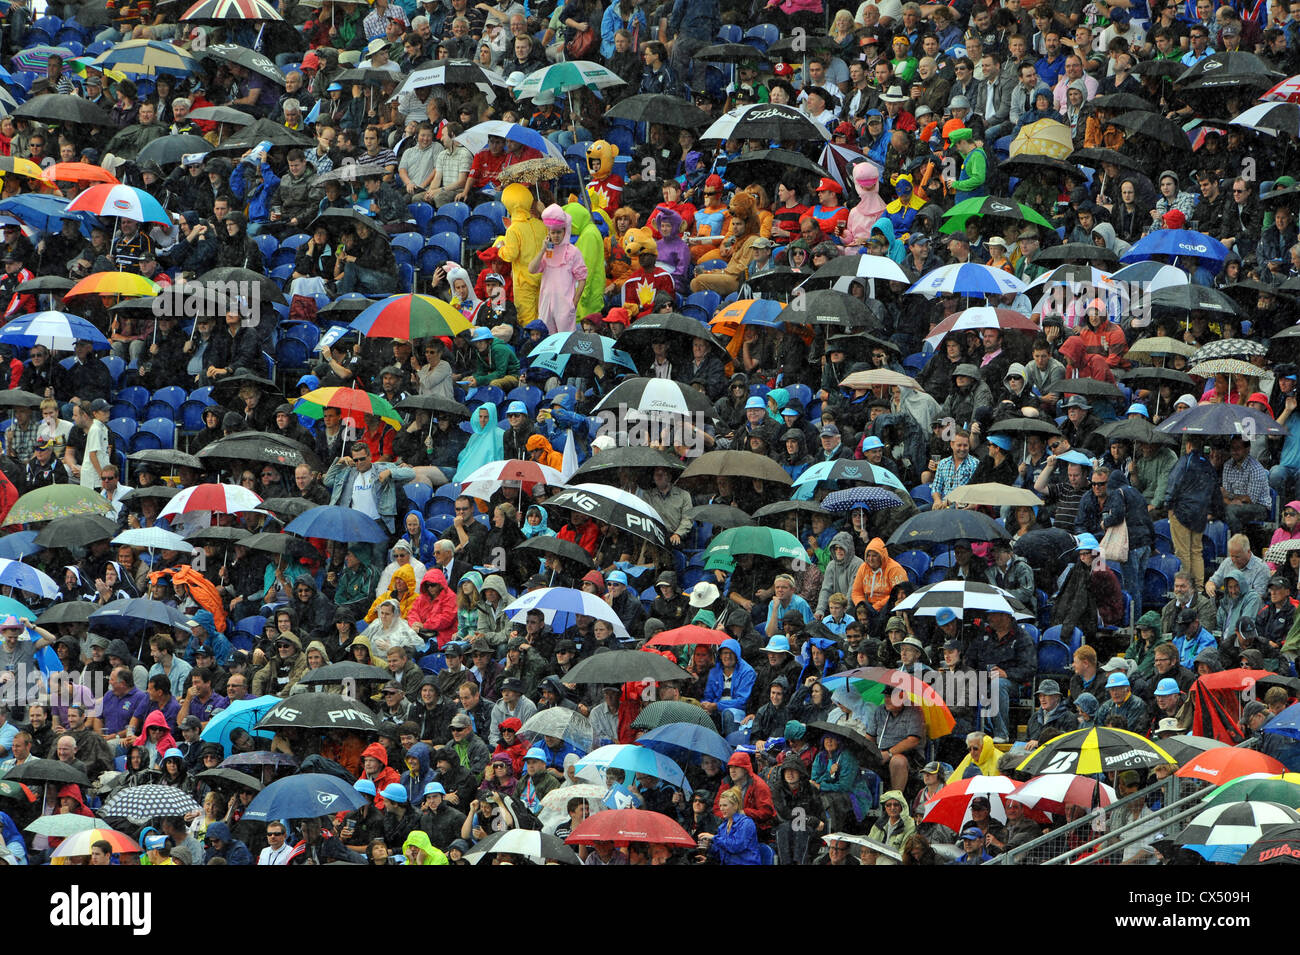 Umbrellas come out as heavy rain starts during the cricket Twenty20 Finals Day 2012 at the Swalec Stadium in Cardiff - Stock Image